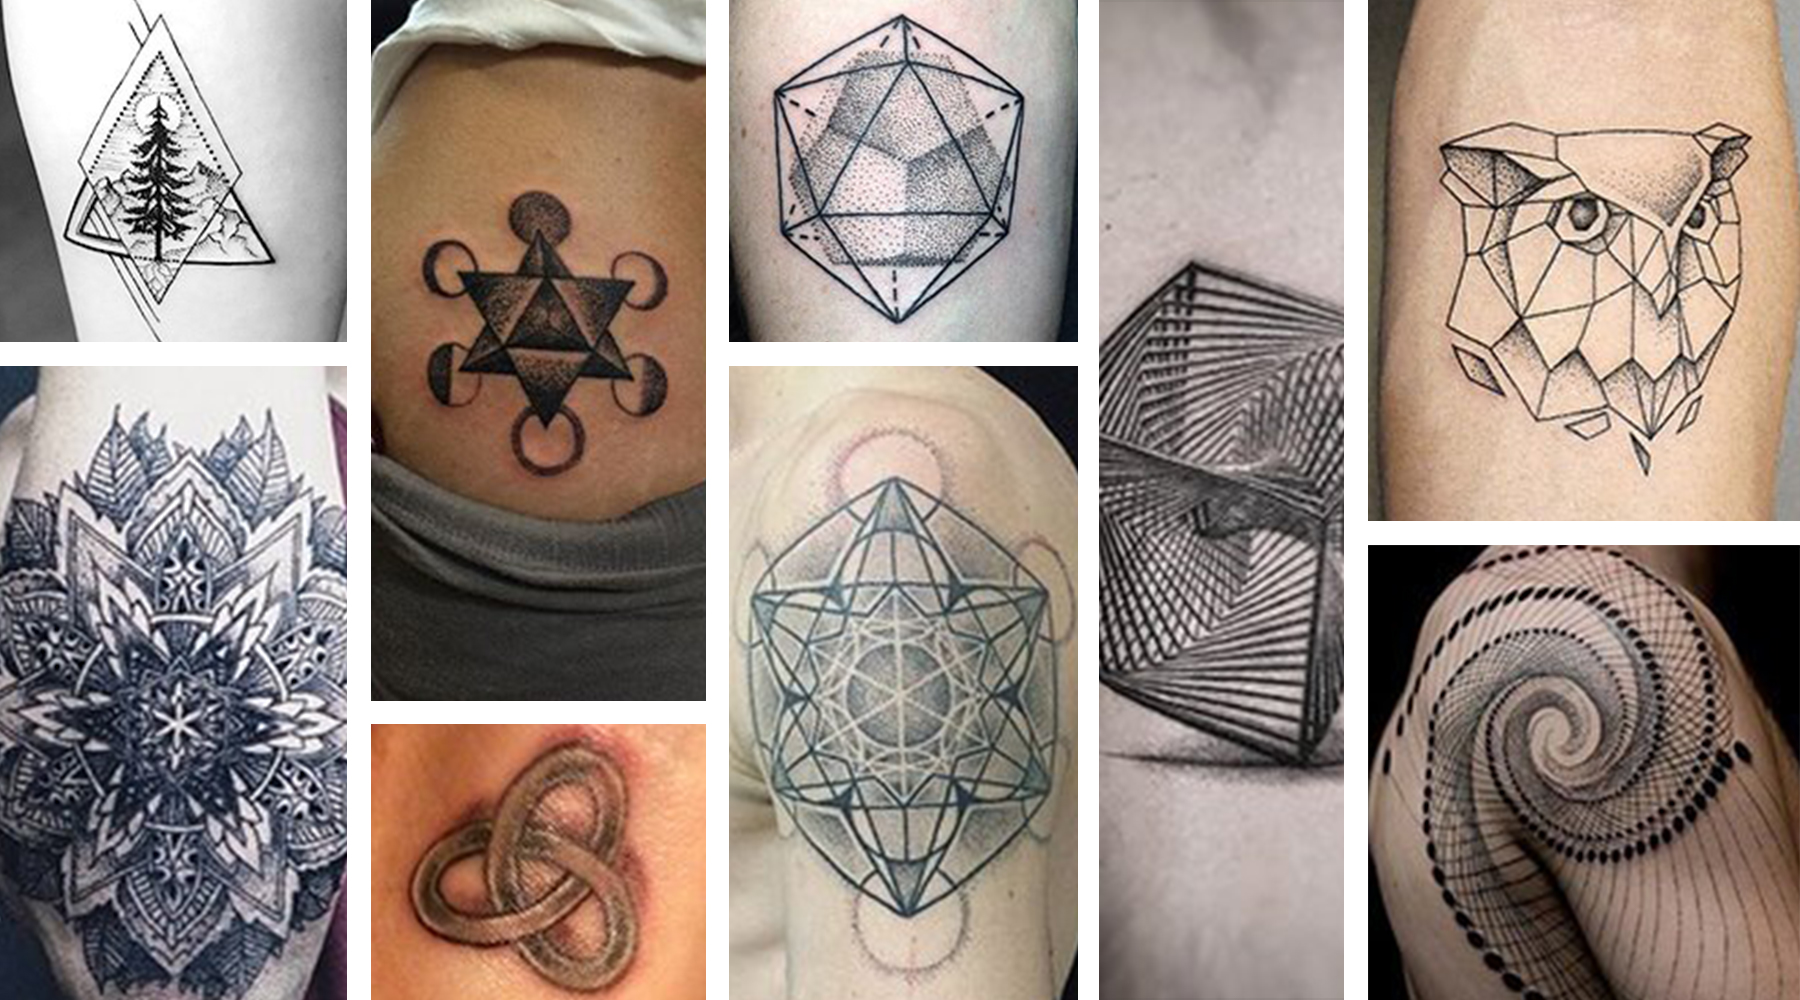 Geometric tattoo designs have existed since ancient times, and many of these symbols live on today. Based on simple mathematical patterns, these designs show the shapes hidden in nature-like the trian...